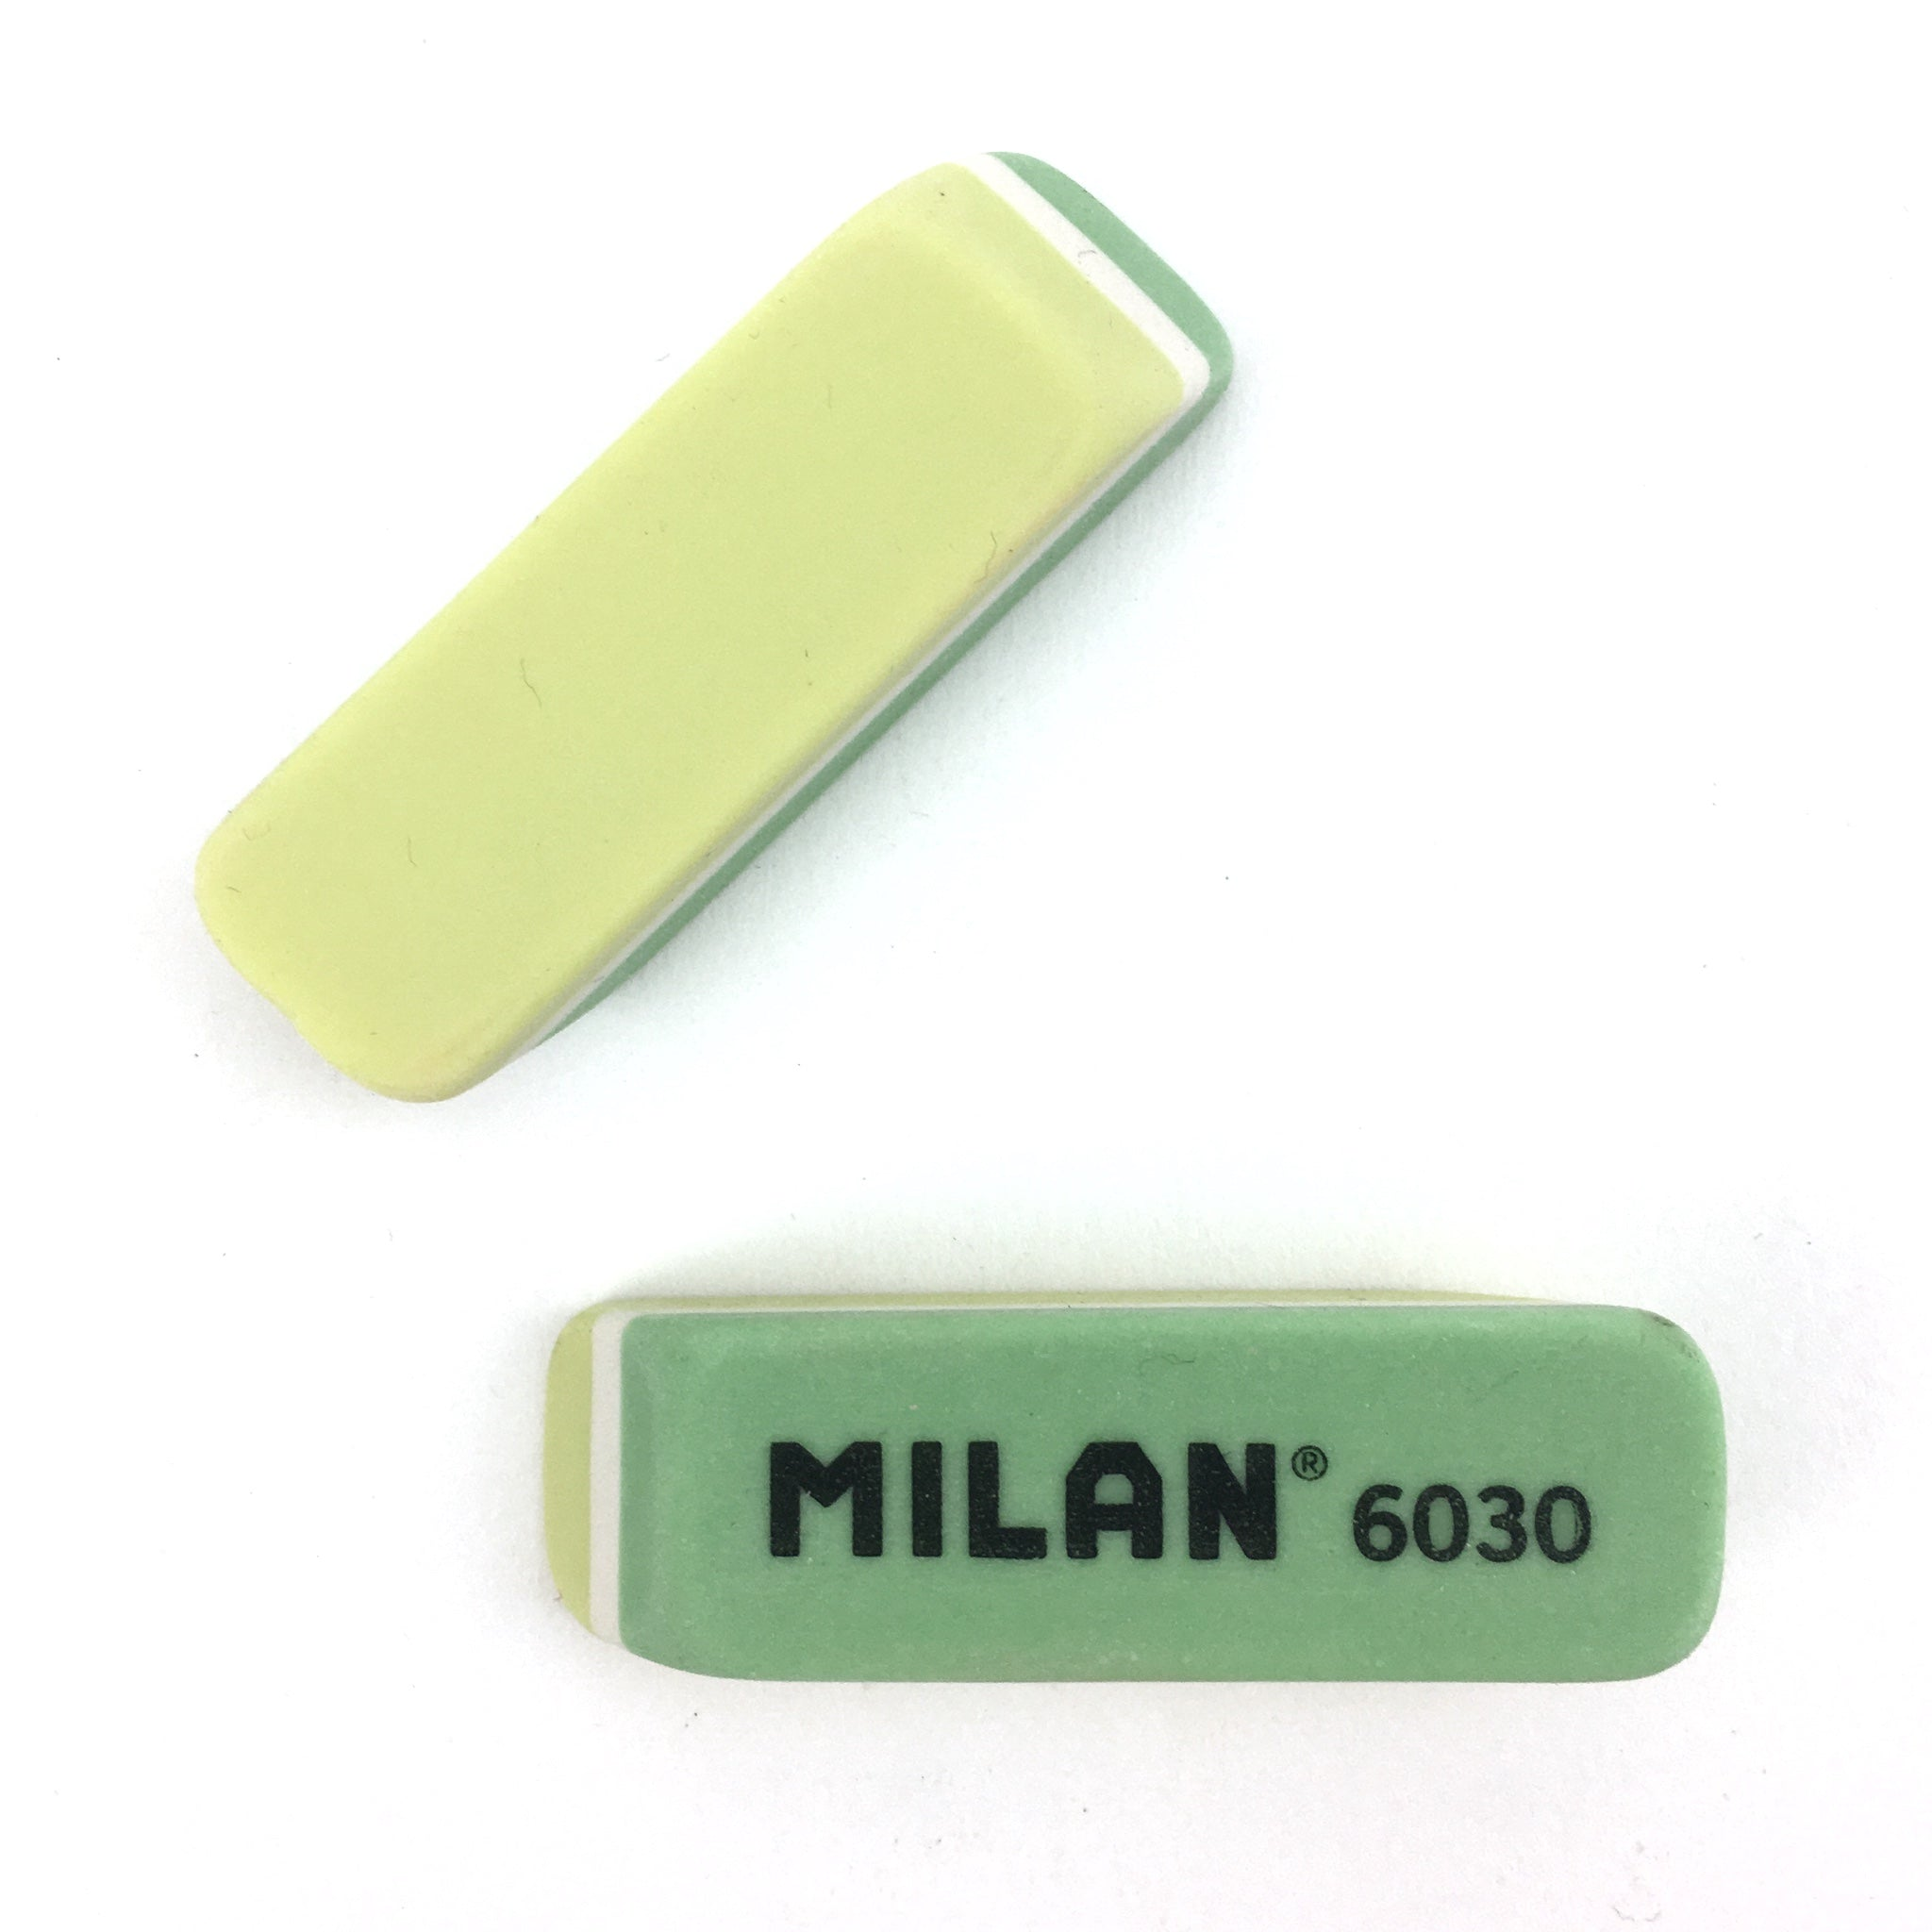 Milan Plastic Eraser - Green and Yellow by Milan - K. A. Artist Shop